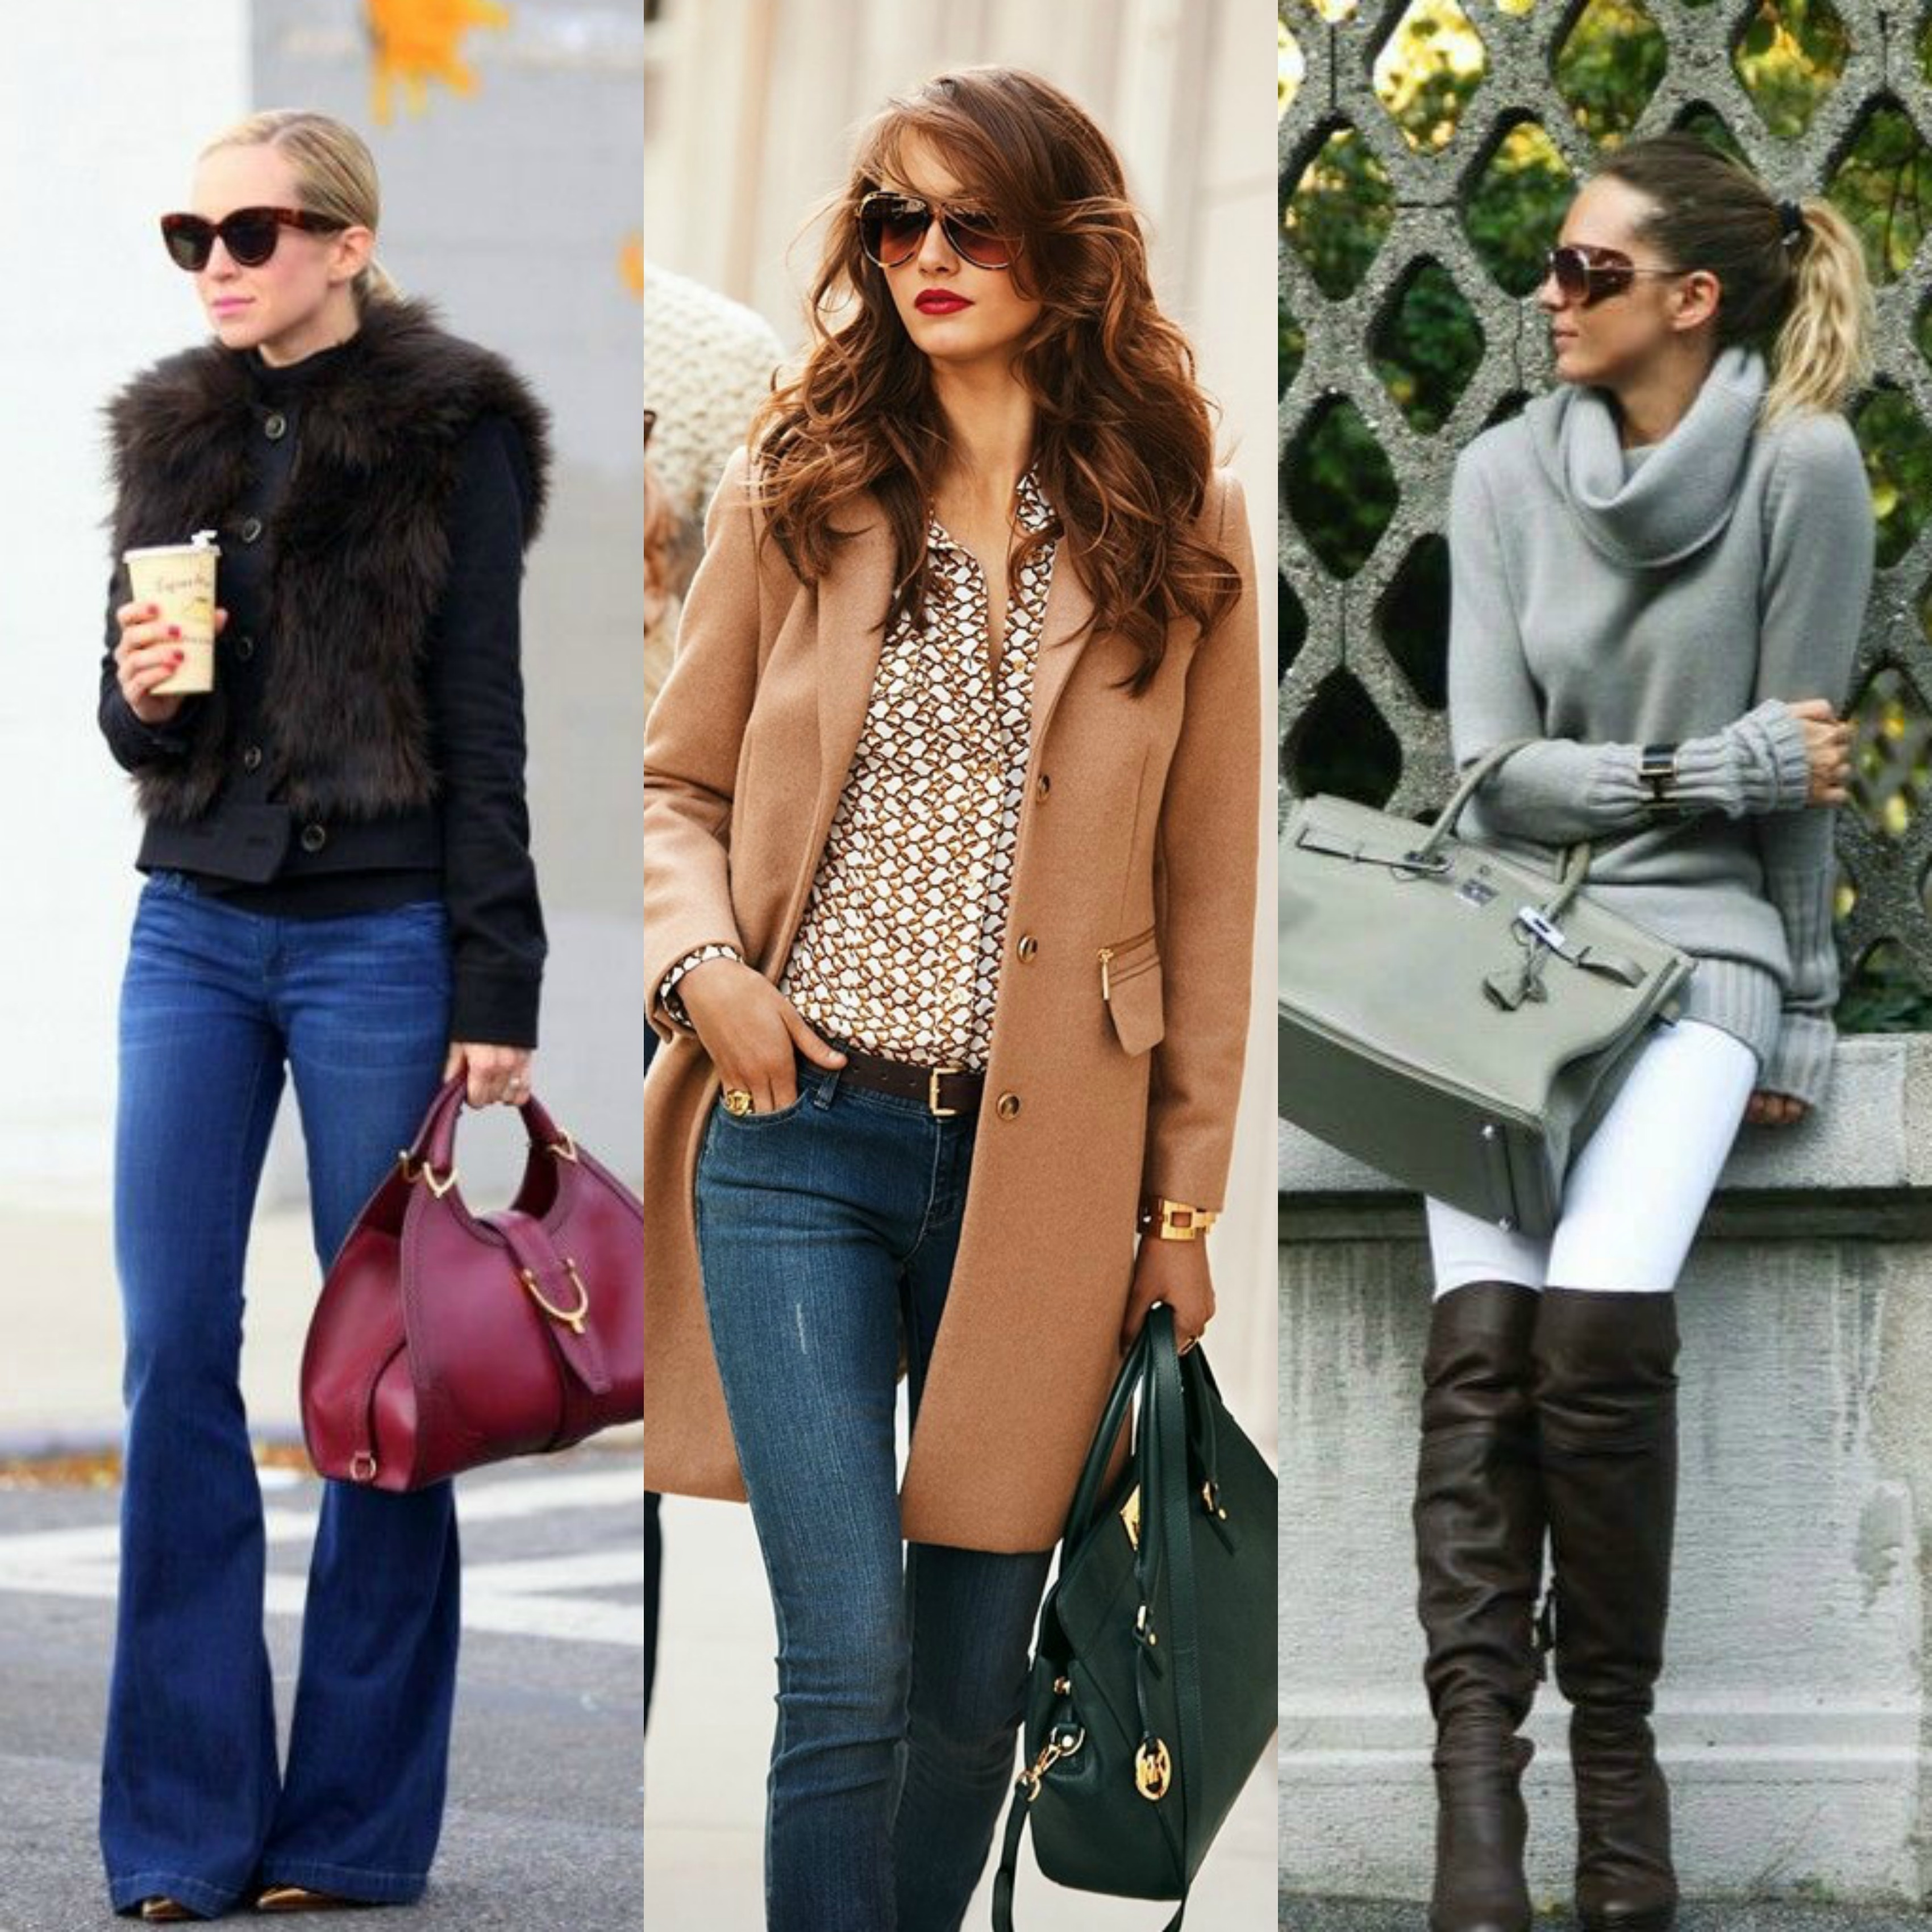 Marvelous Simple Fashion Outfits Casual Looks